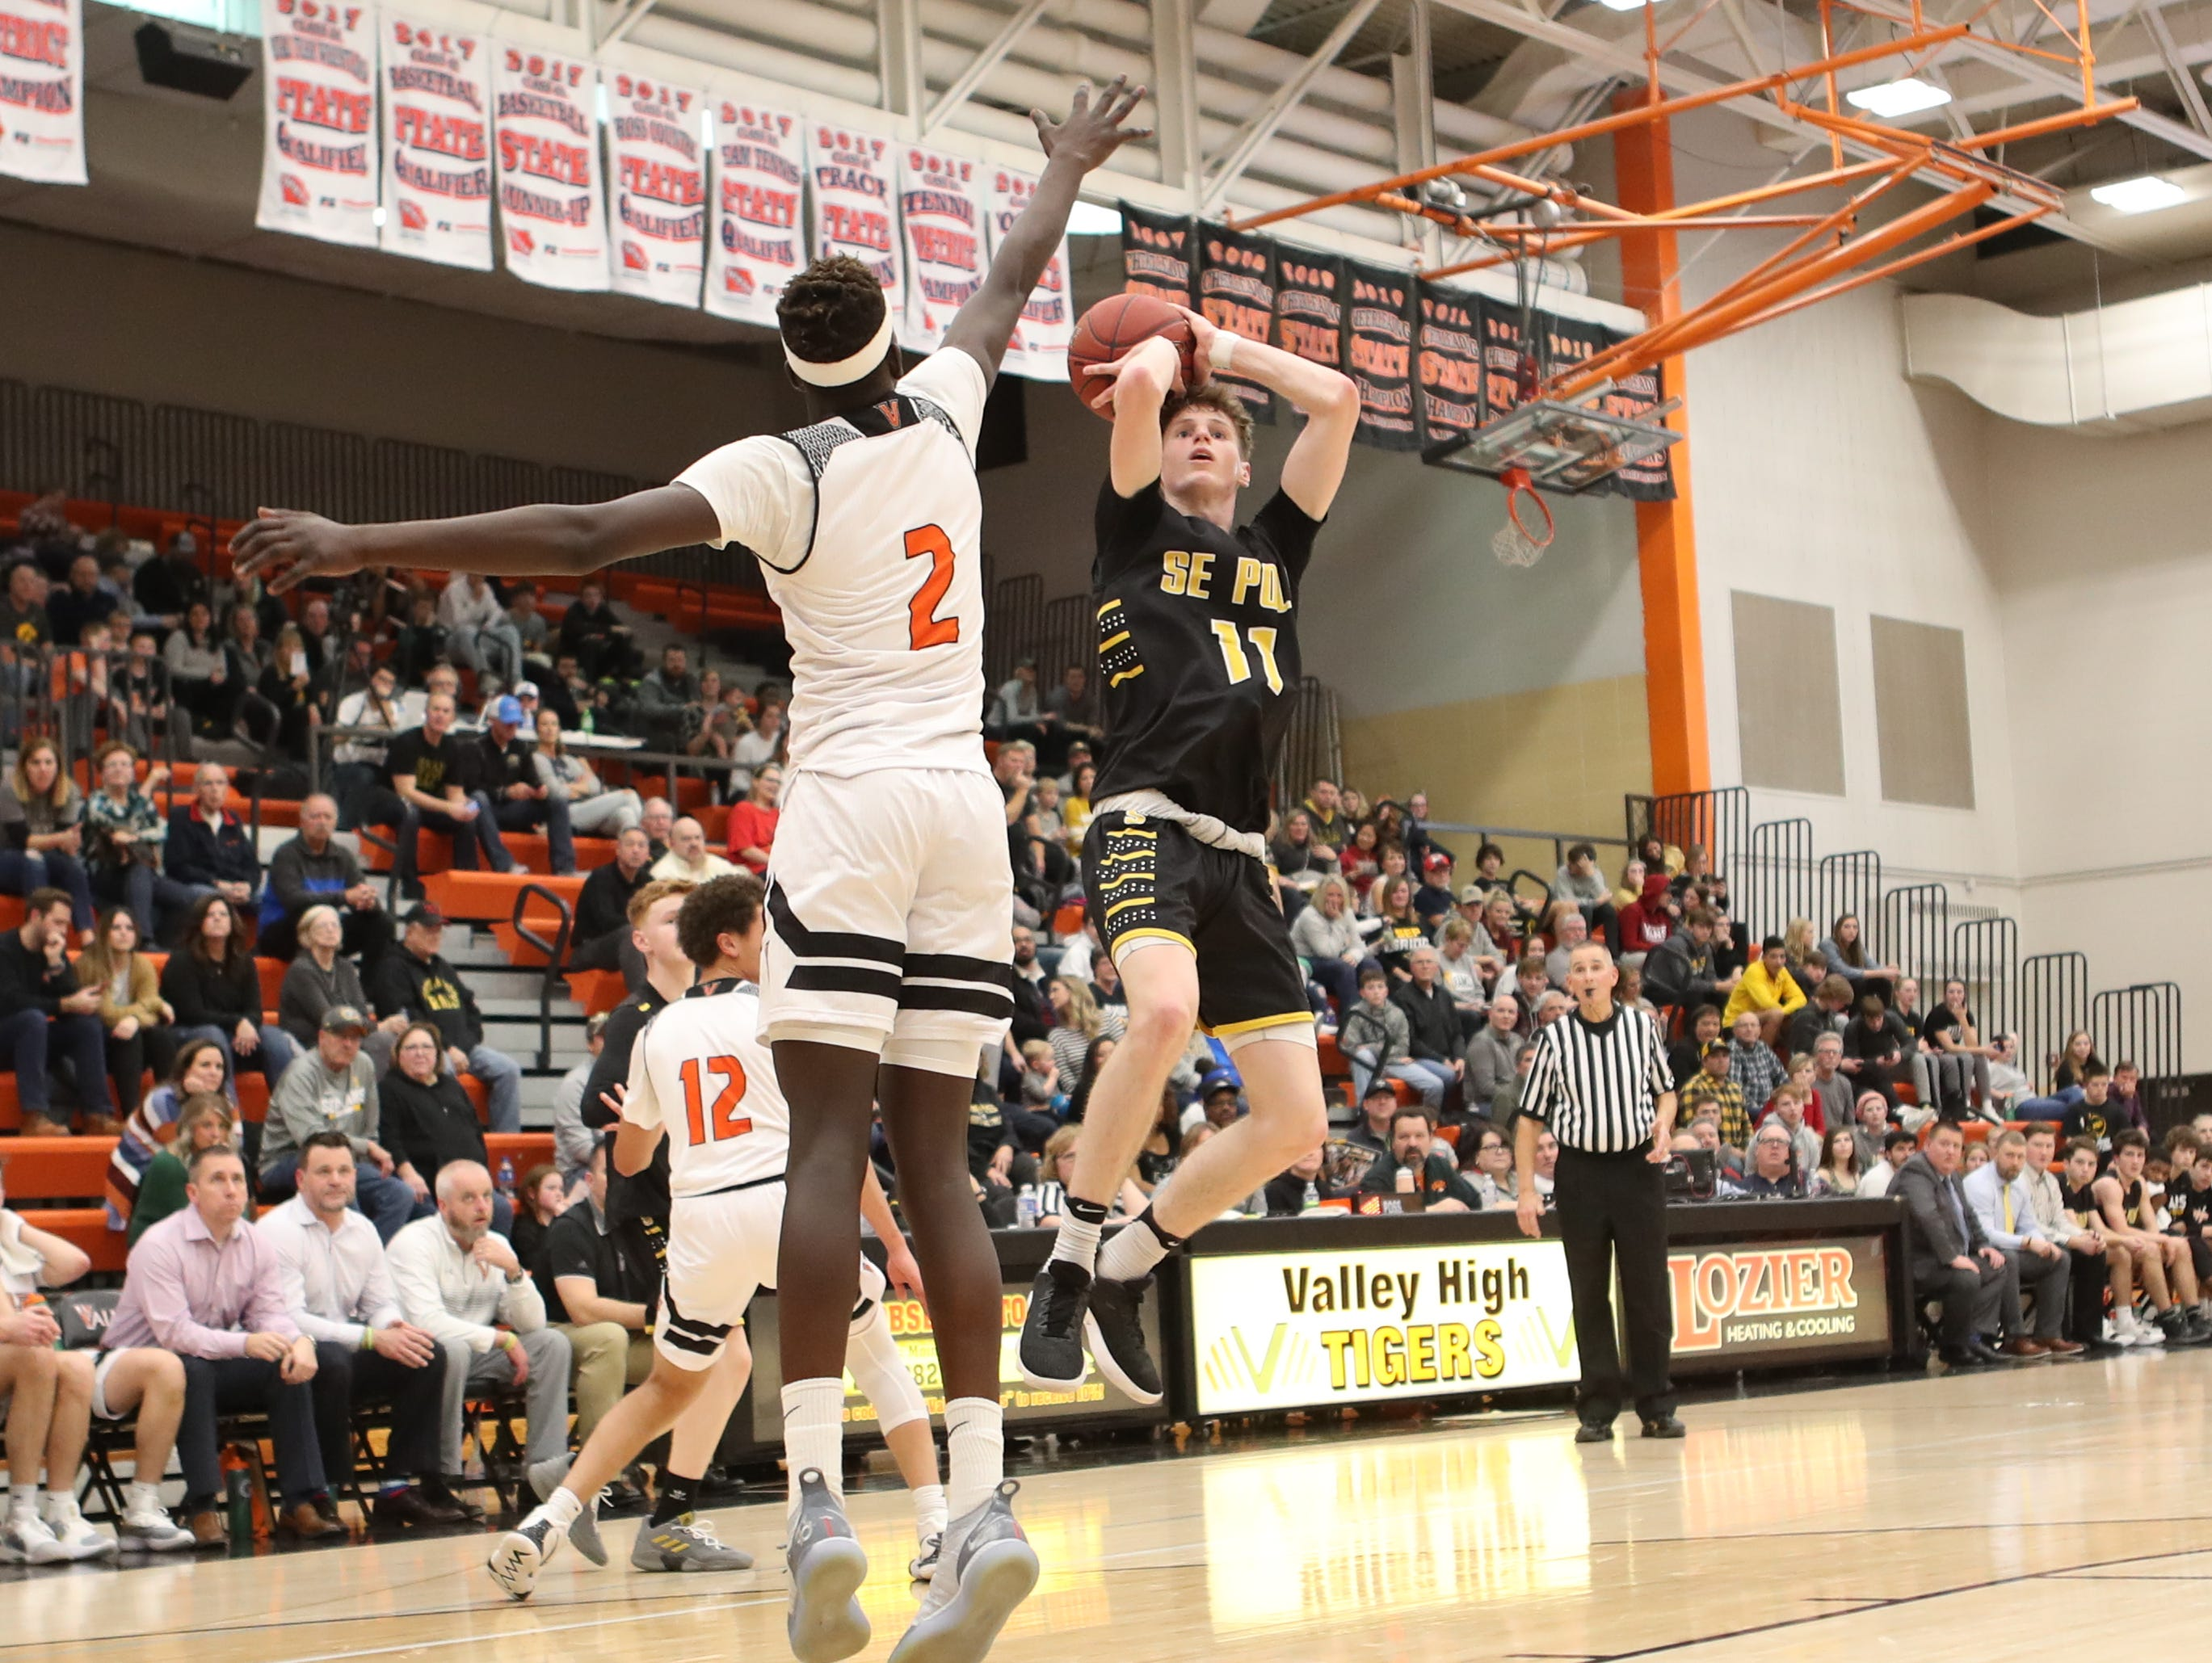 Southeast Polk Rams' Sam Glenn (11) shoots over Valley Tigers' Aguek Deng during a boys basketball game at Valley High School on Jan. 11, 2019. Valley won, 61-54.